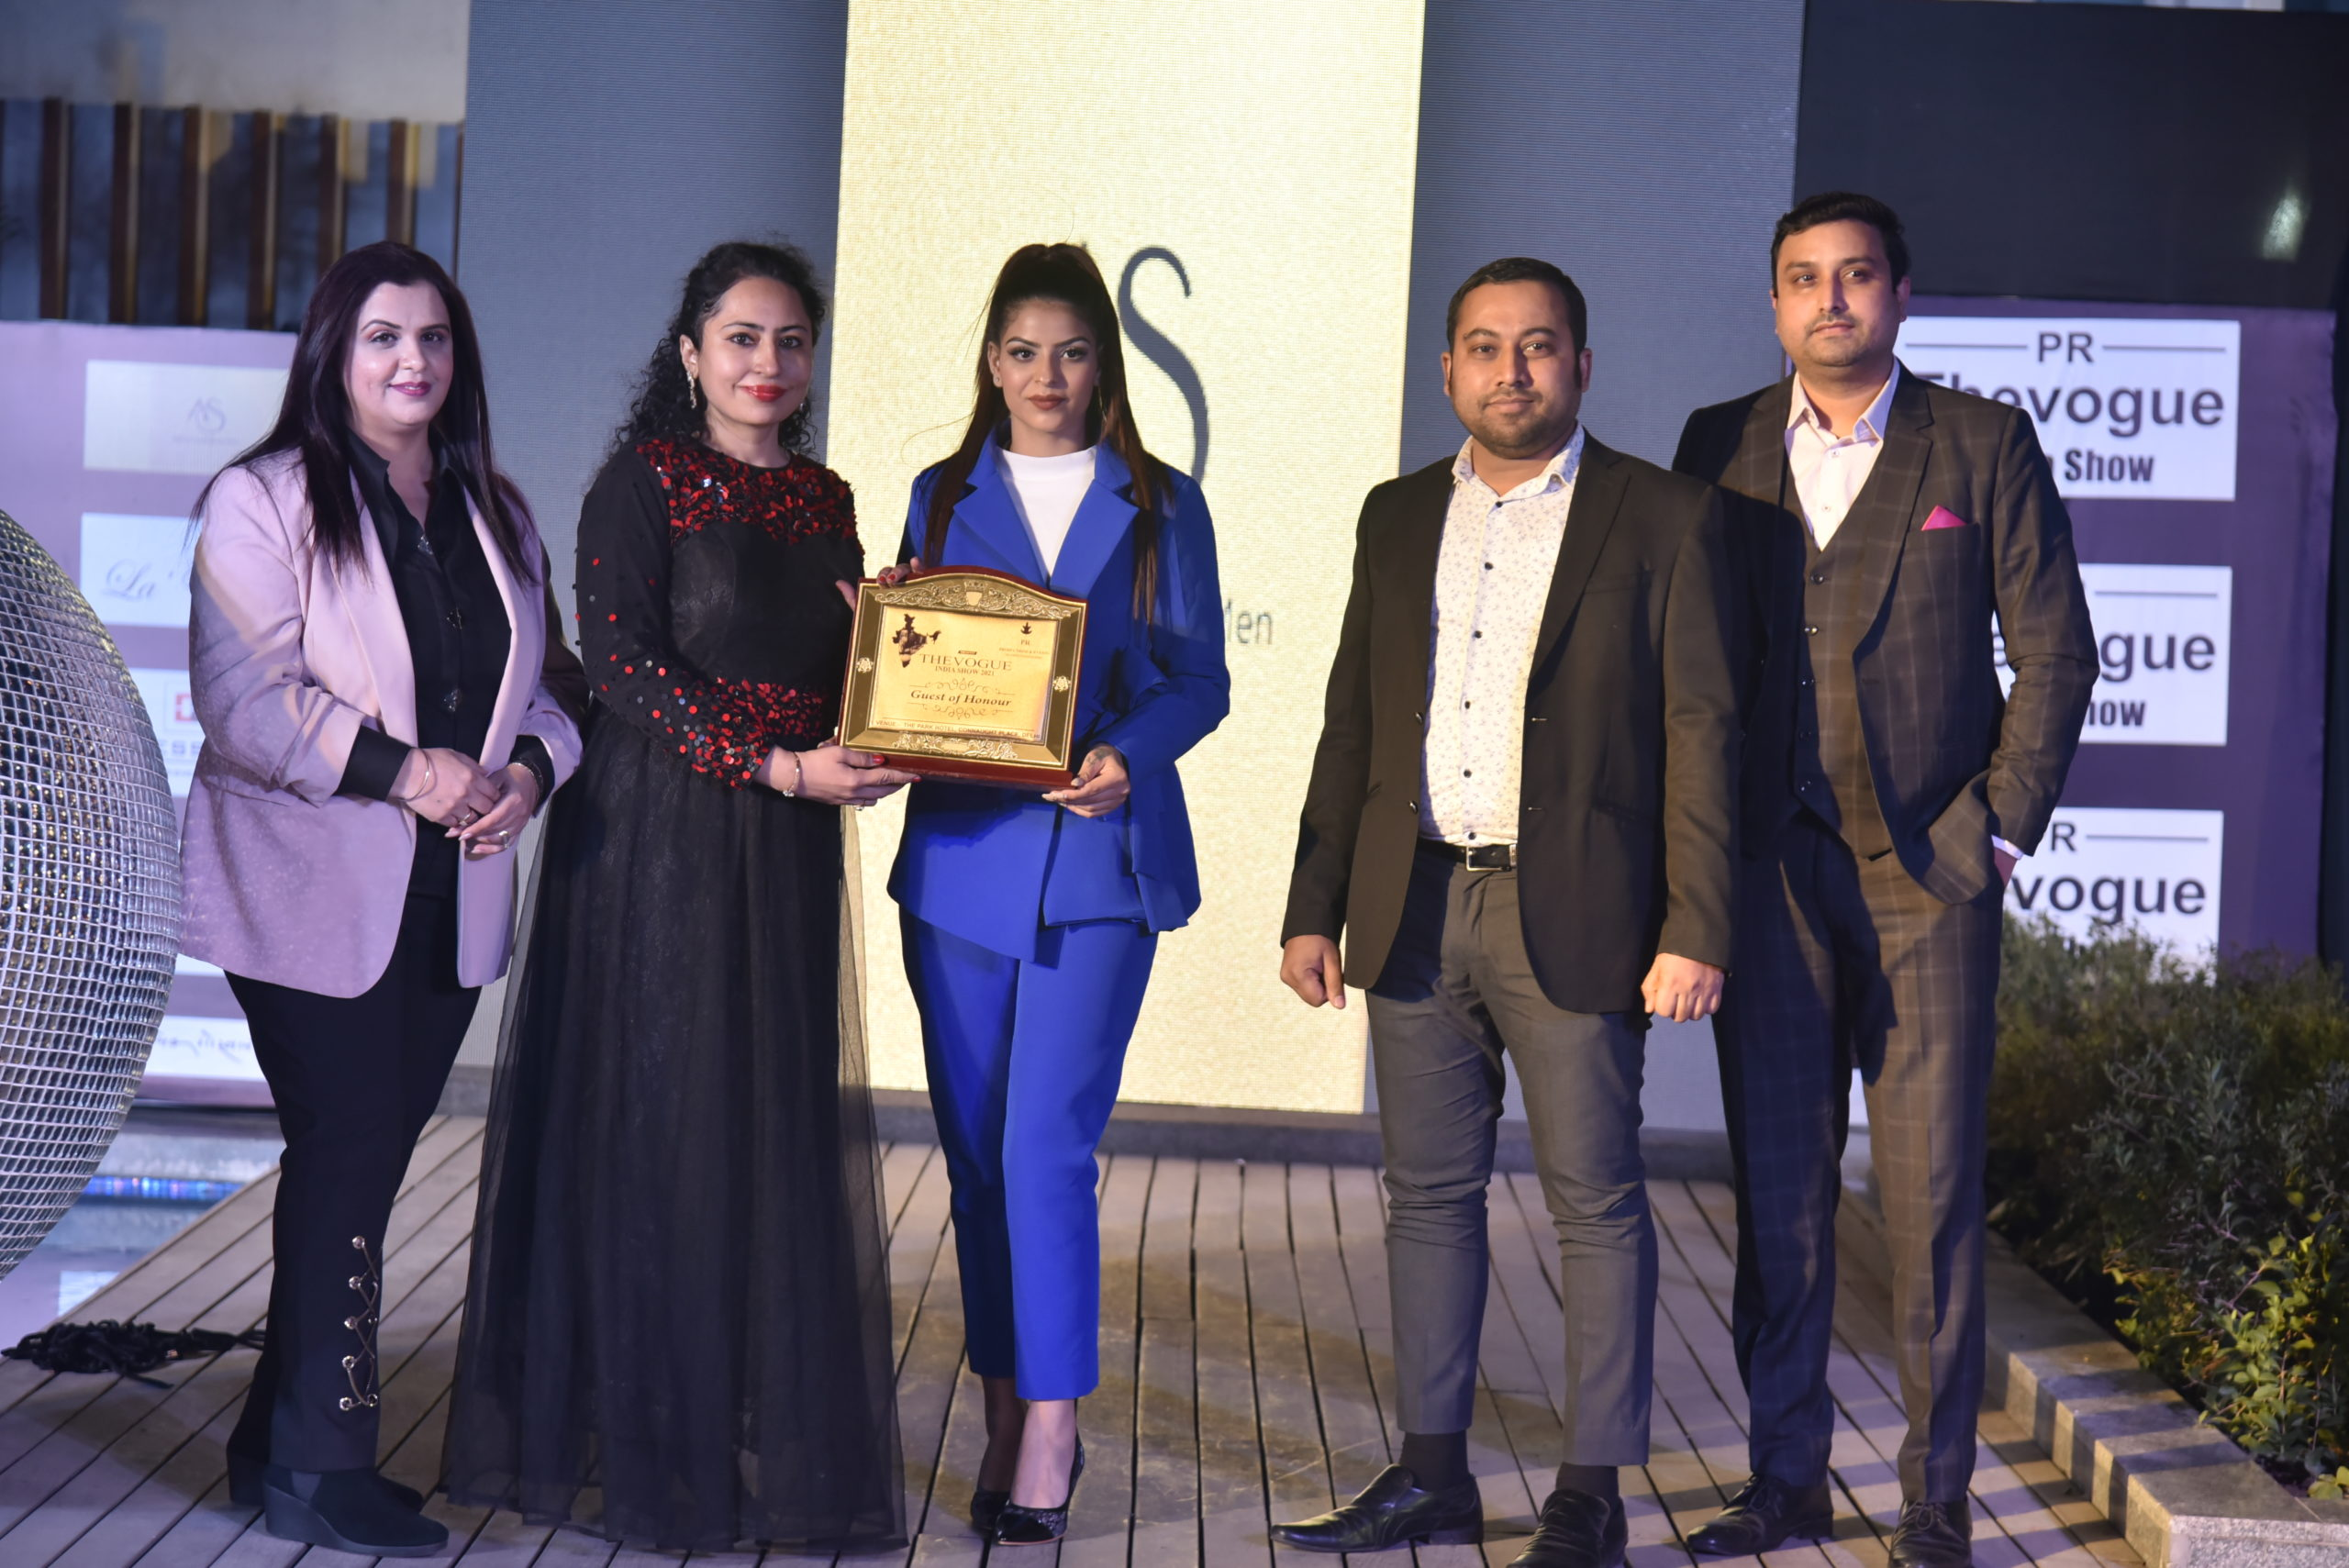 Thevogue India Show 2021 concluded in Delhi